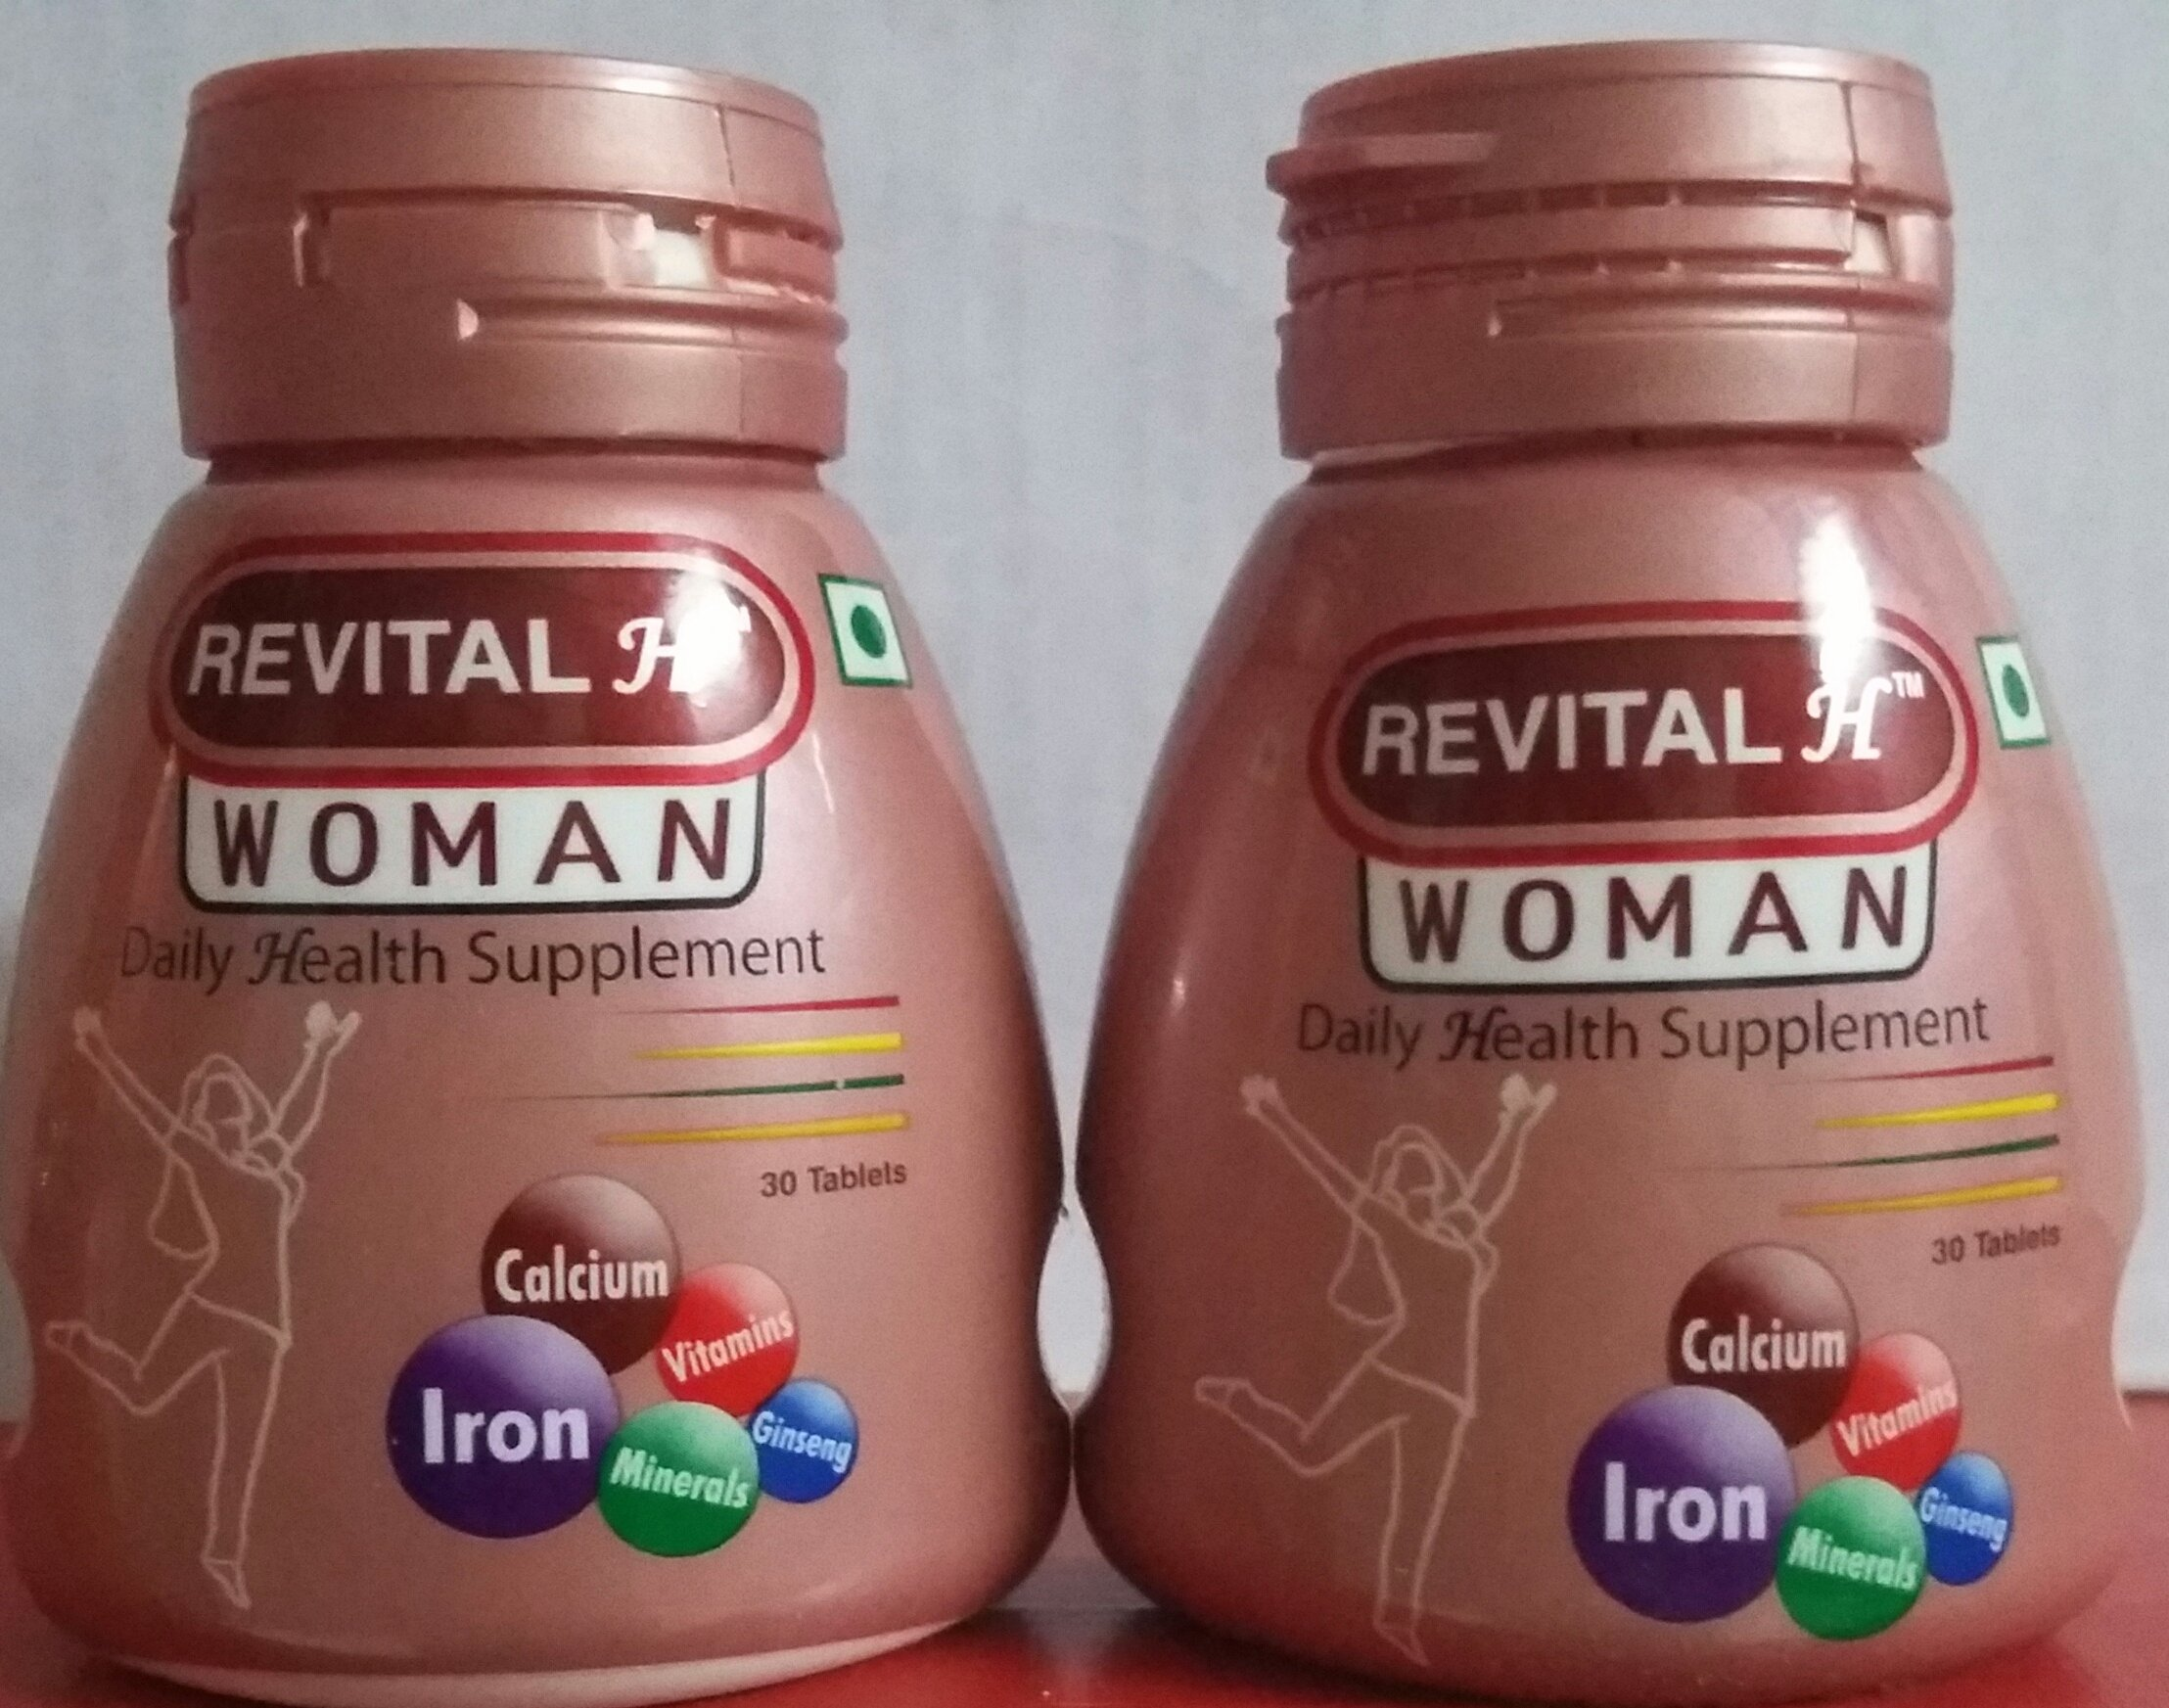 Revital H Woman Pack Of 2 Contains 30 Capsules product image